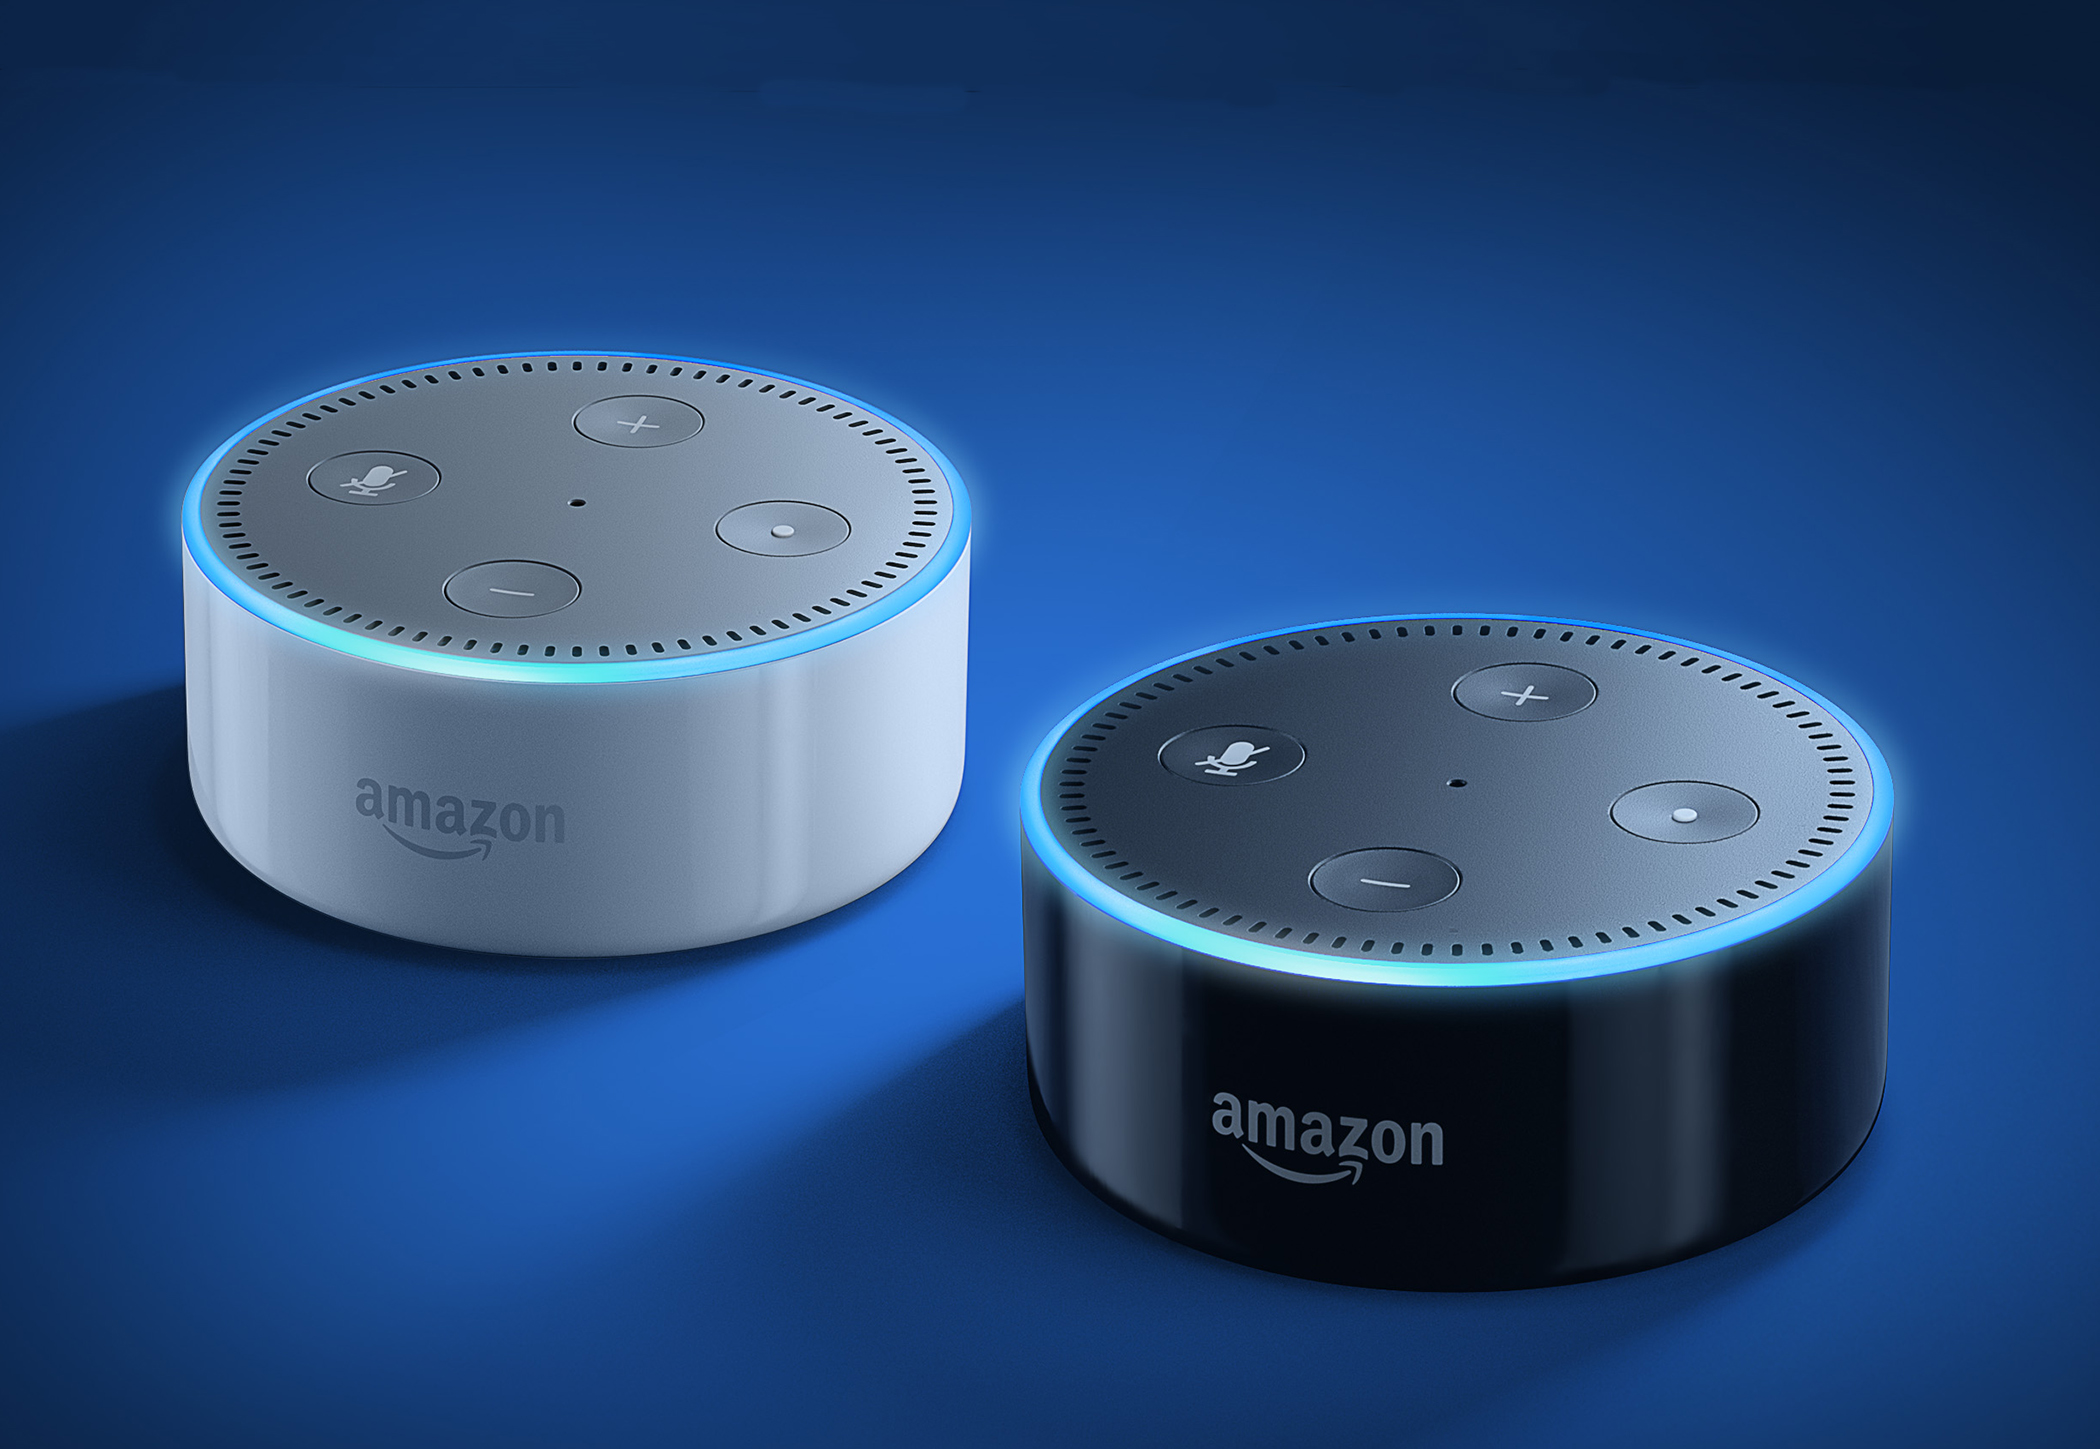 """This is the Amazon Echo Dot – about the size of a hockey puck. Just say a command, starting with """"Alexa,"""" and it will play music, tell you the news, or even turn on your alarm system. But there is one thing Alexa can't do. She can't drive your car – yet."""